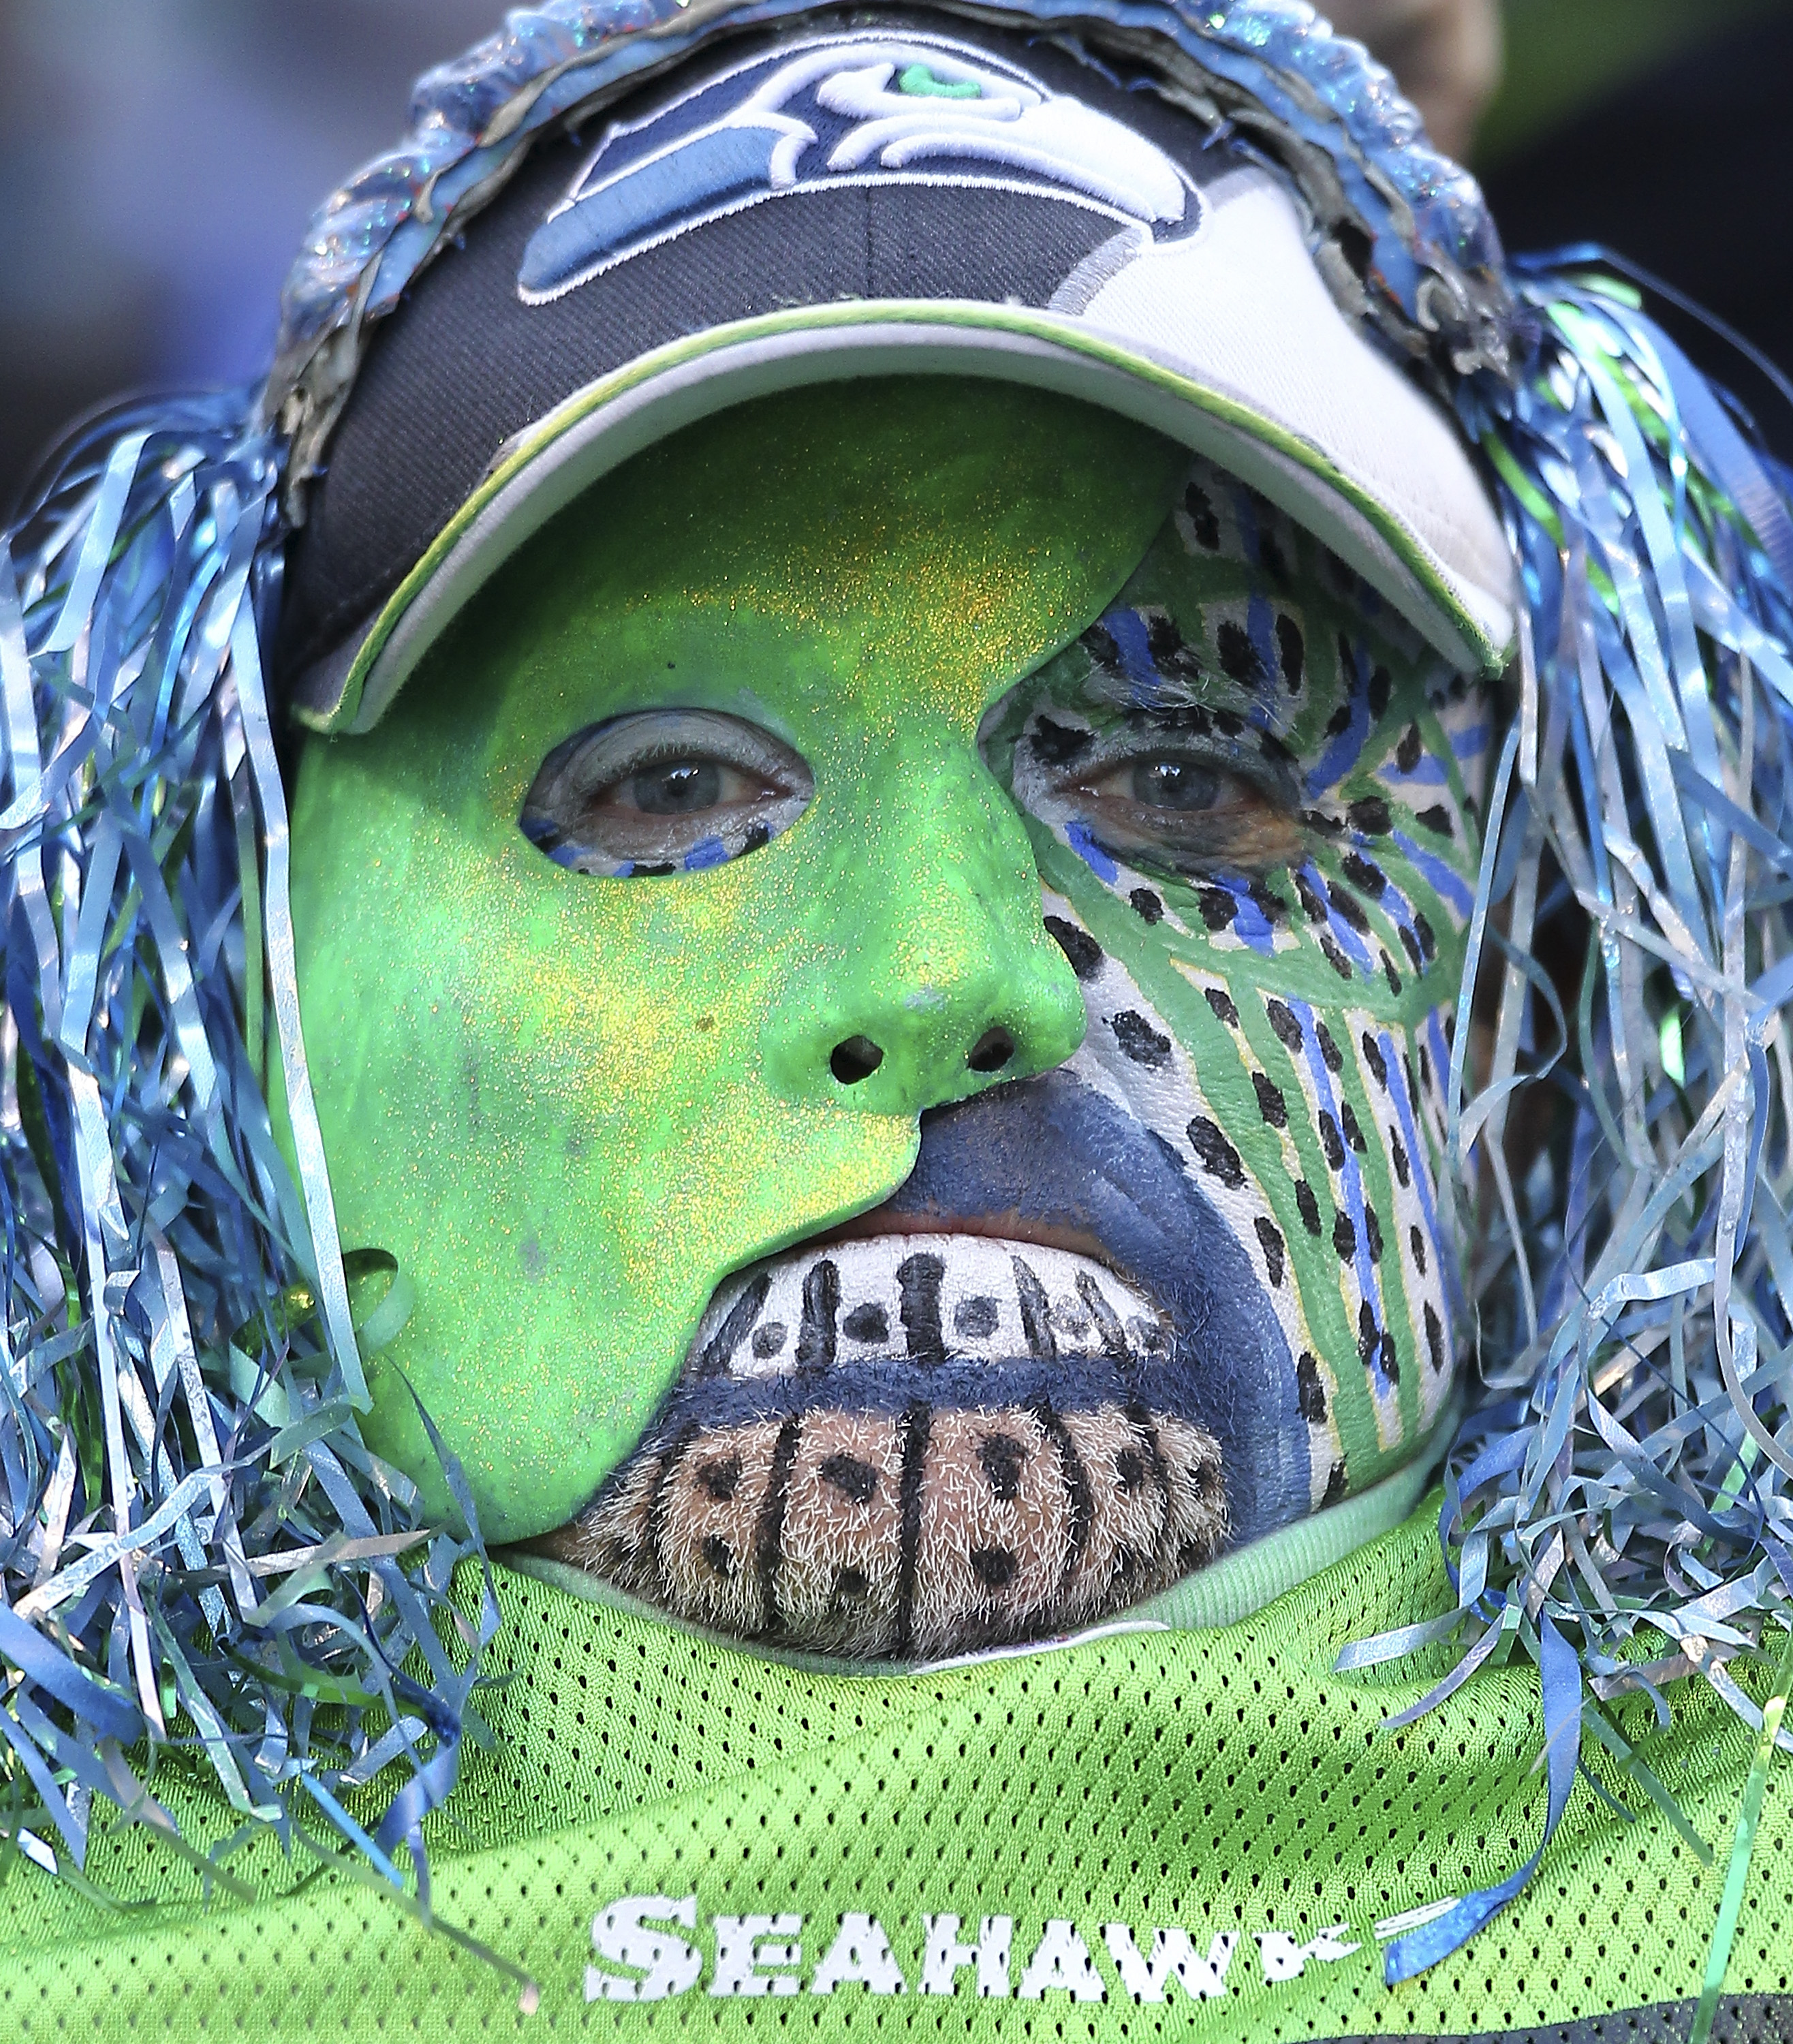 SEATTLE, WA - DECEMBER 19:  A fan looks on during the game between the Seattle Seahawks and the Atlanta Falcons at Qwest Field on December 19, 2010 in Seattle, Washington. The Falcons defeated the Seahawks 34-18. (Photo by Otto Greule Jr/Getty Images)